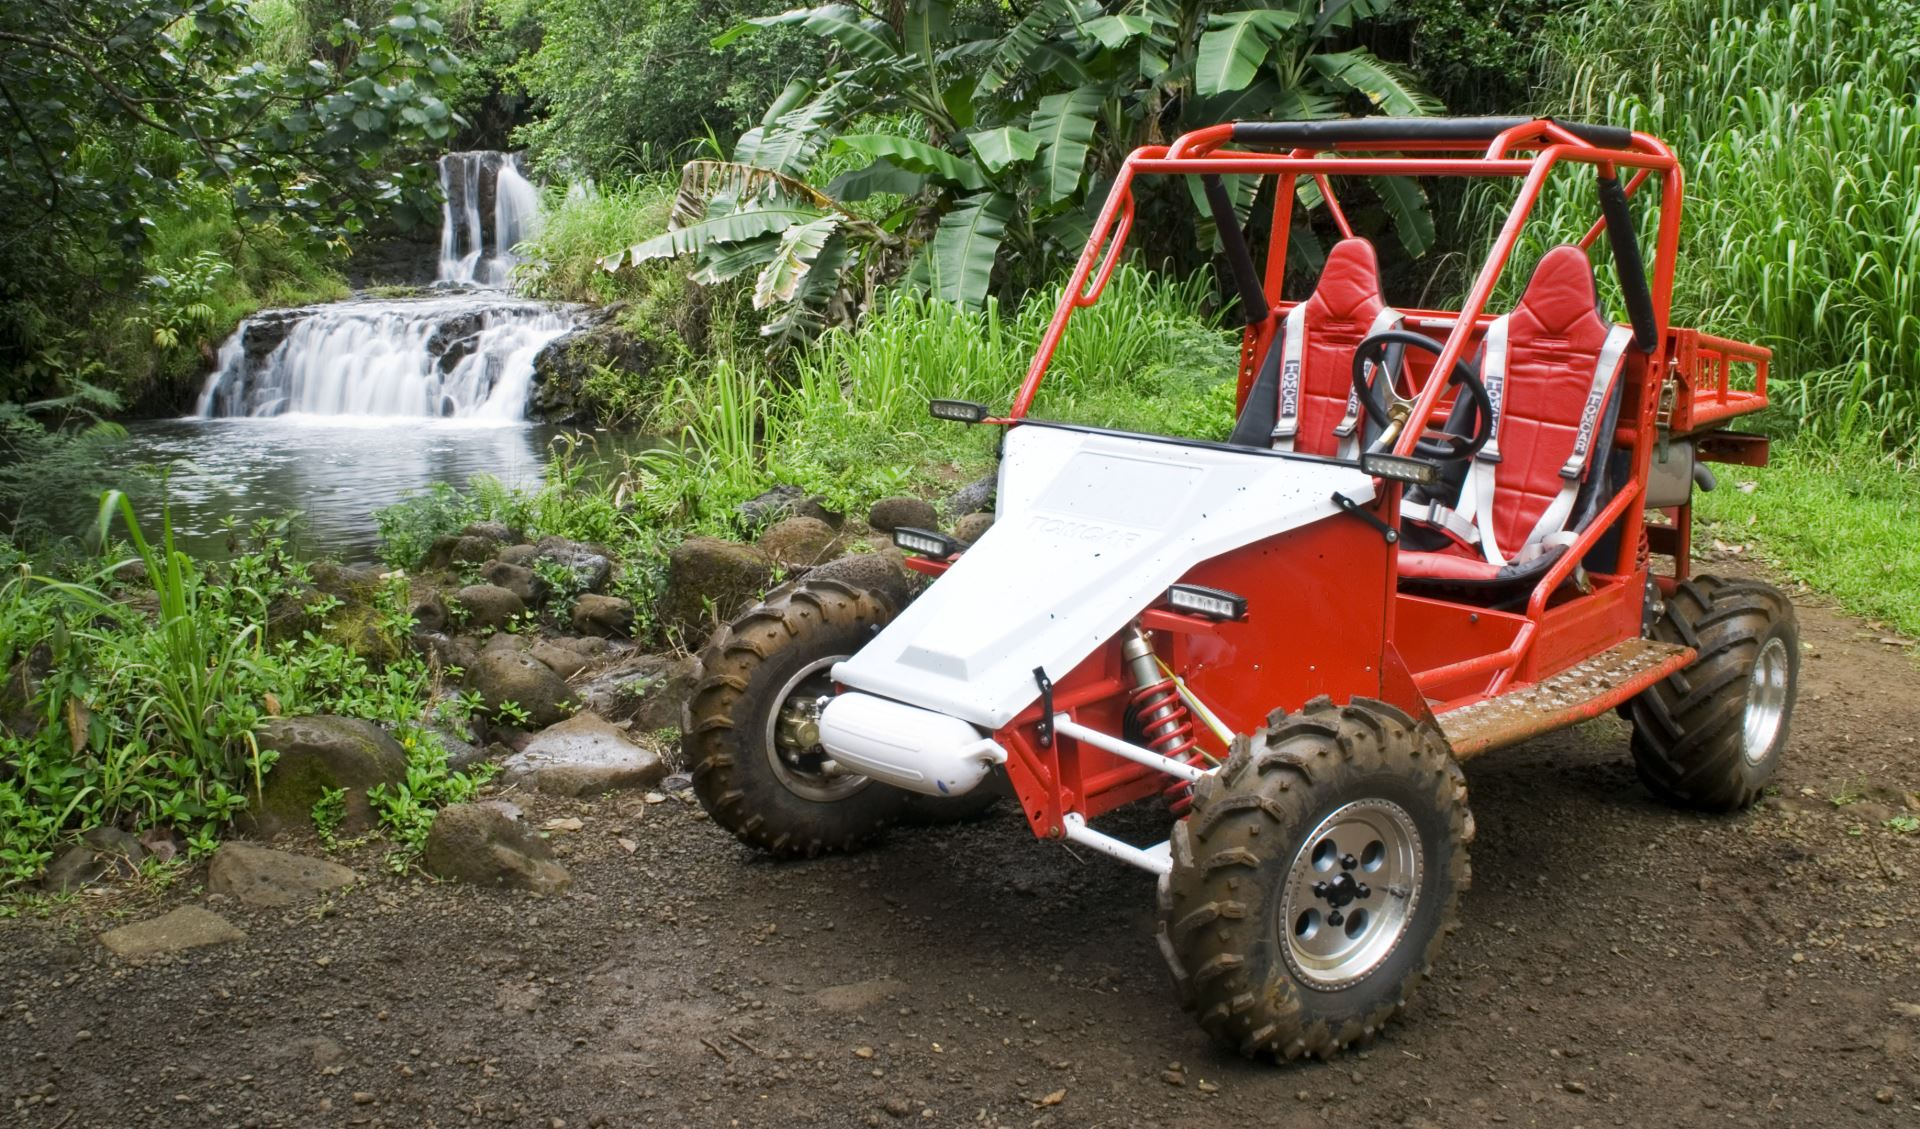 Product Waterfall ATV Tour